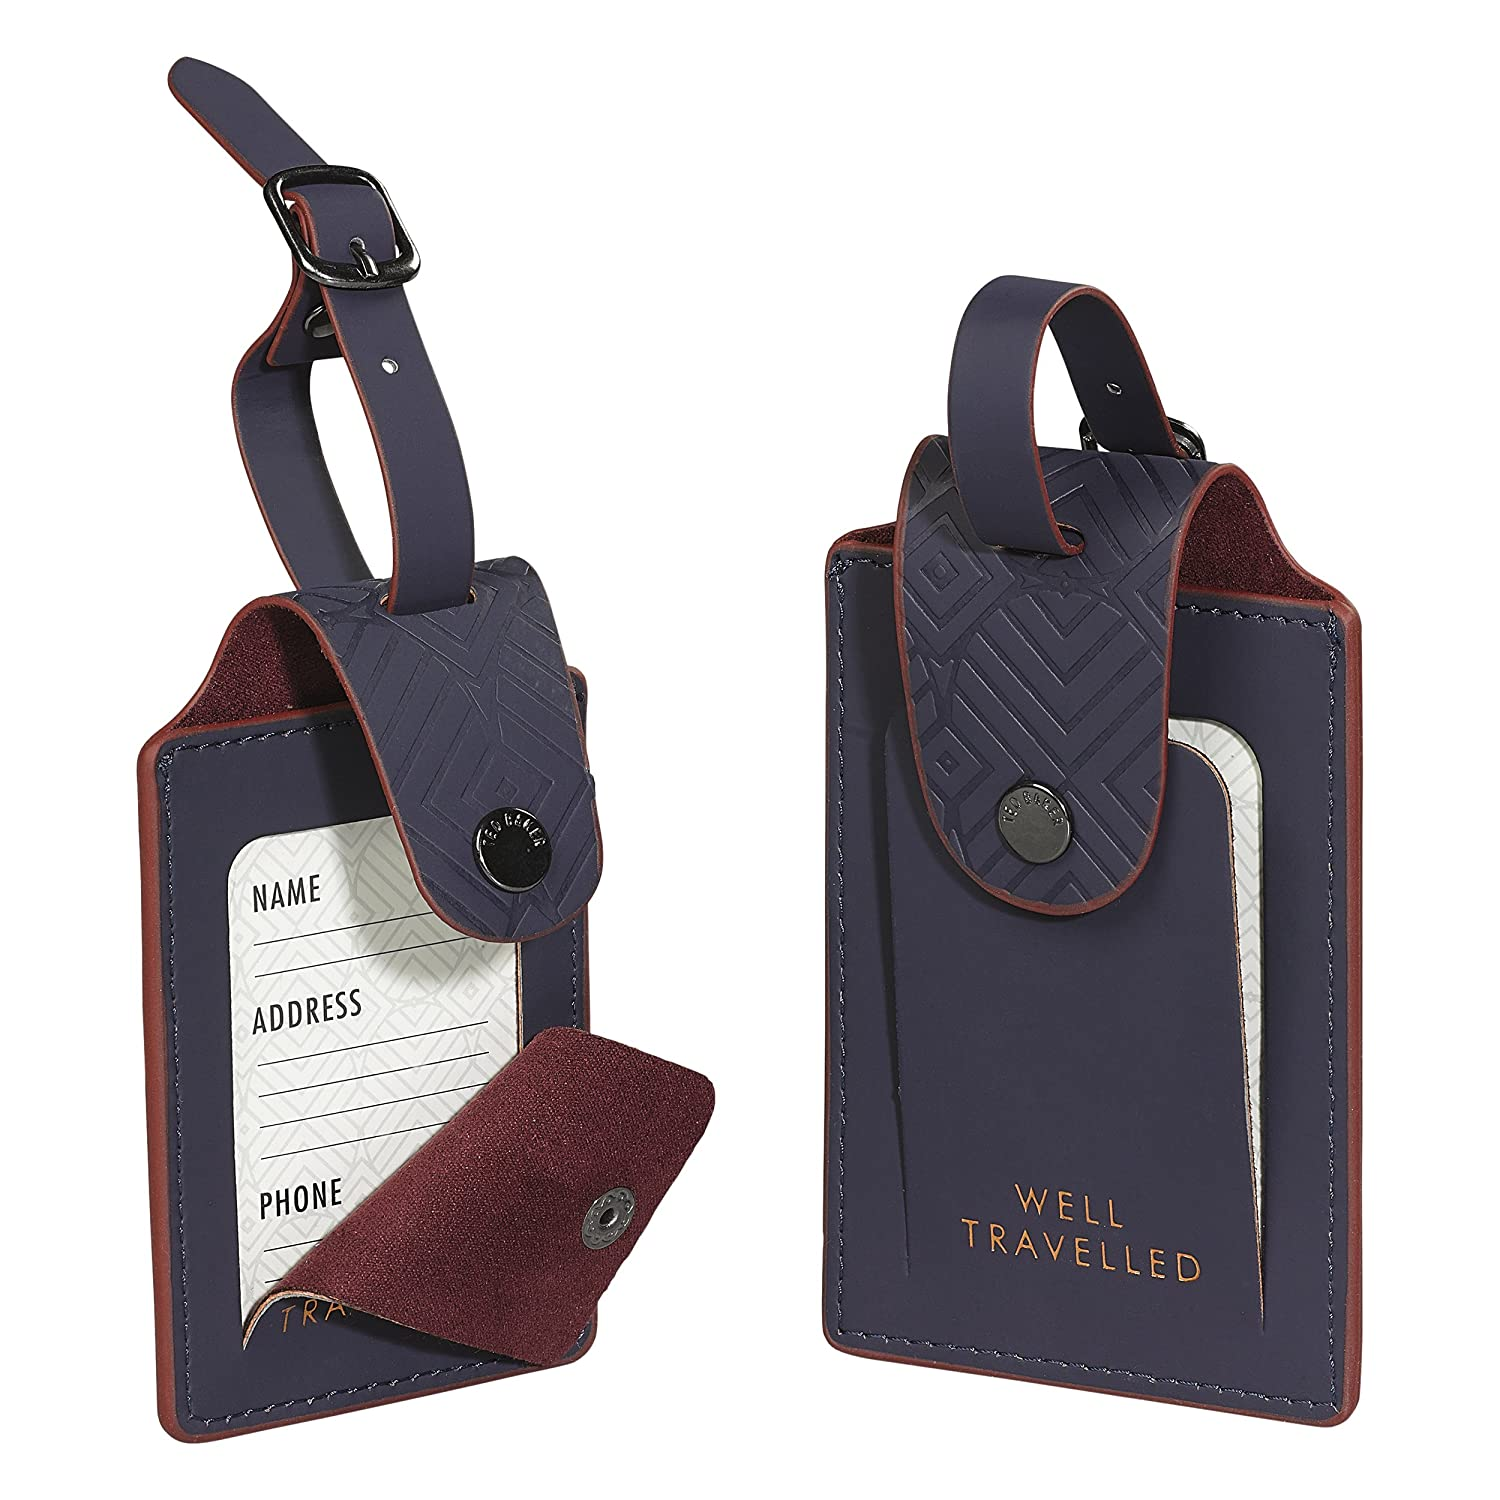 34dfcb5d8733e Ted Baker Set of 2 Luggage Tags